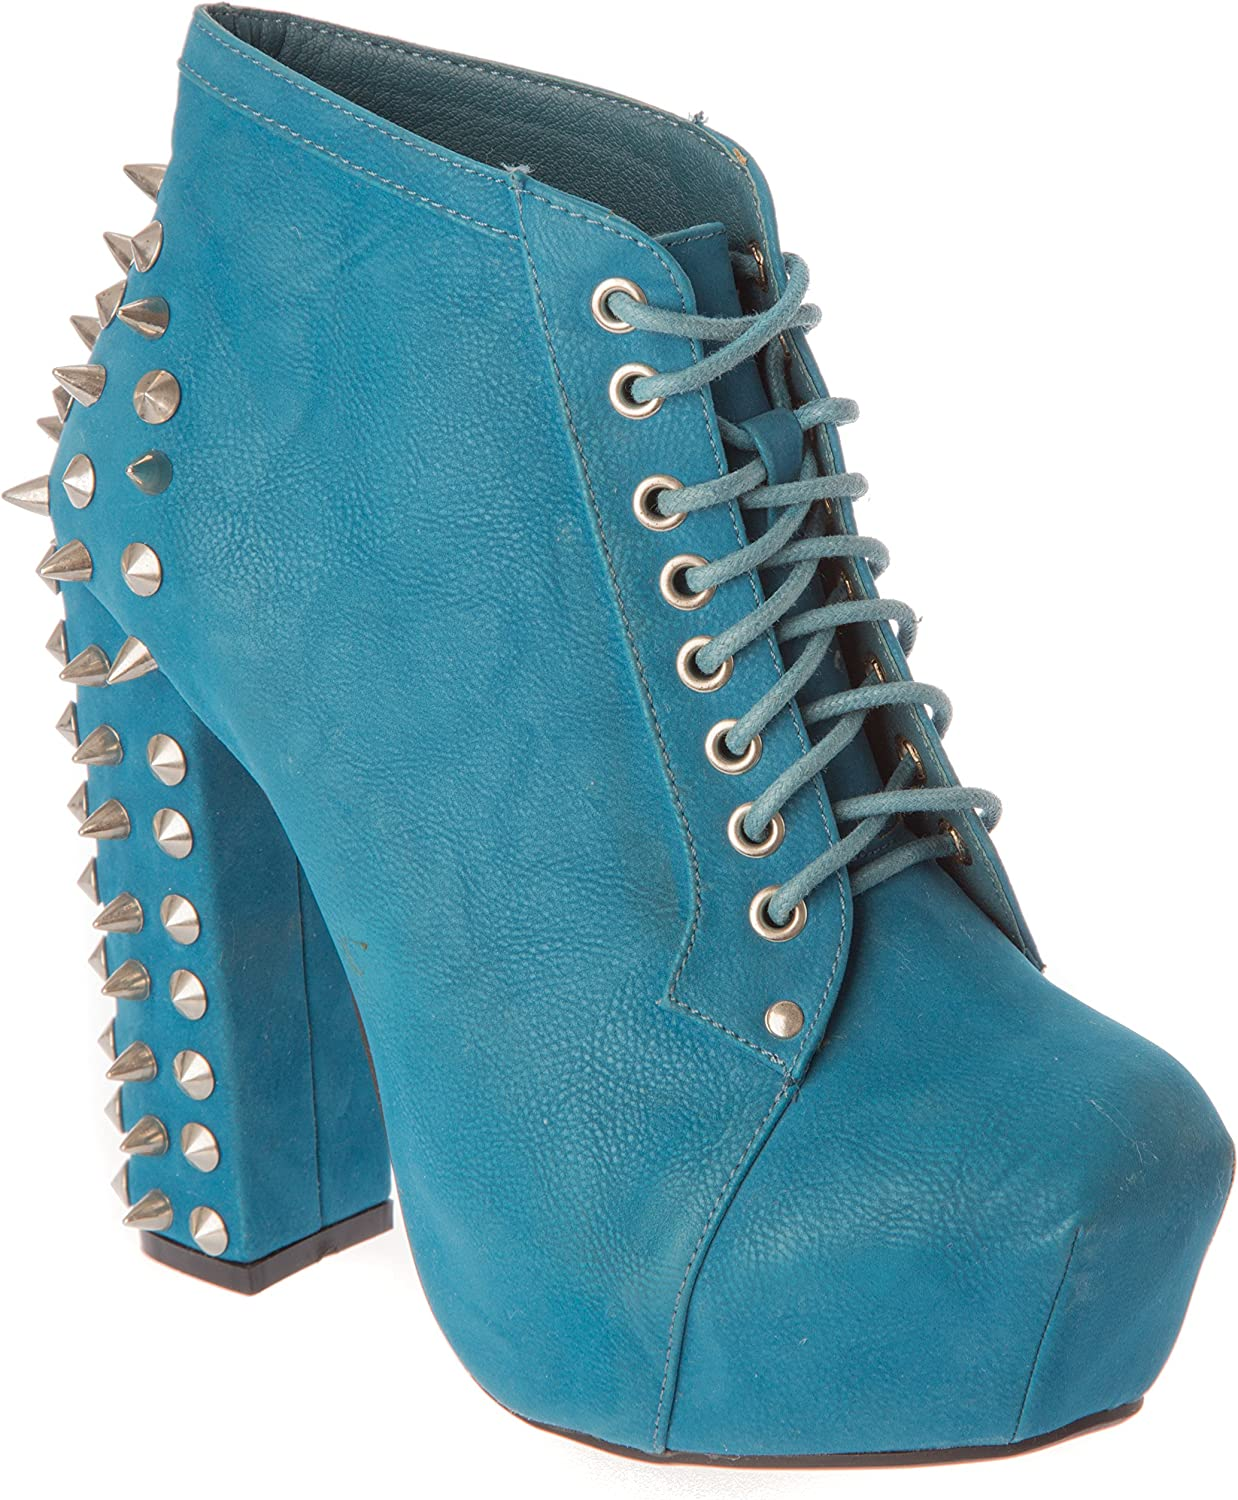 Anna Almeida av5013teal Womans Ankle-High Heel Boots PU Leather Studs Fashion shoes